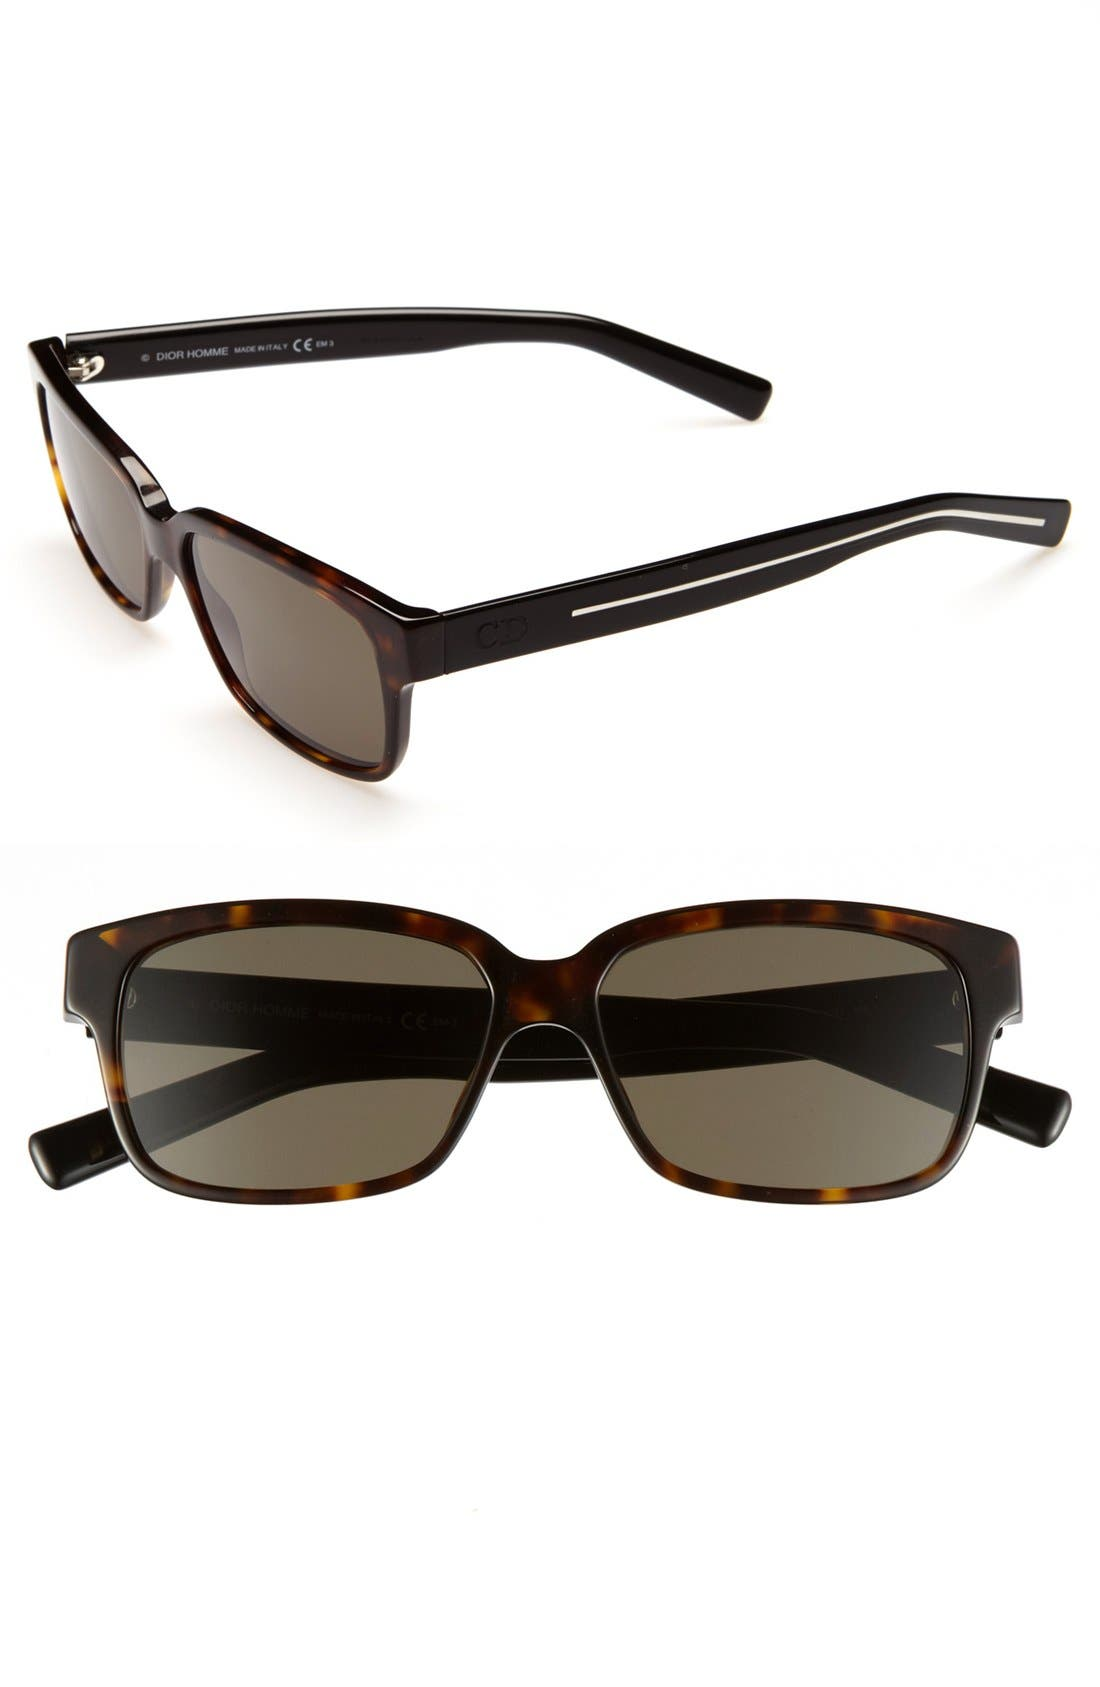 Main Image - Christian Dior '148S' 54mm Sunglasses